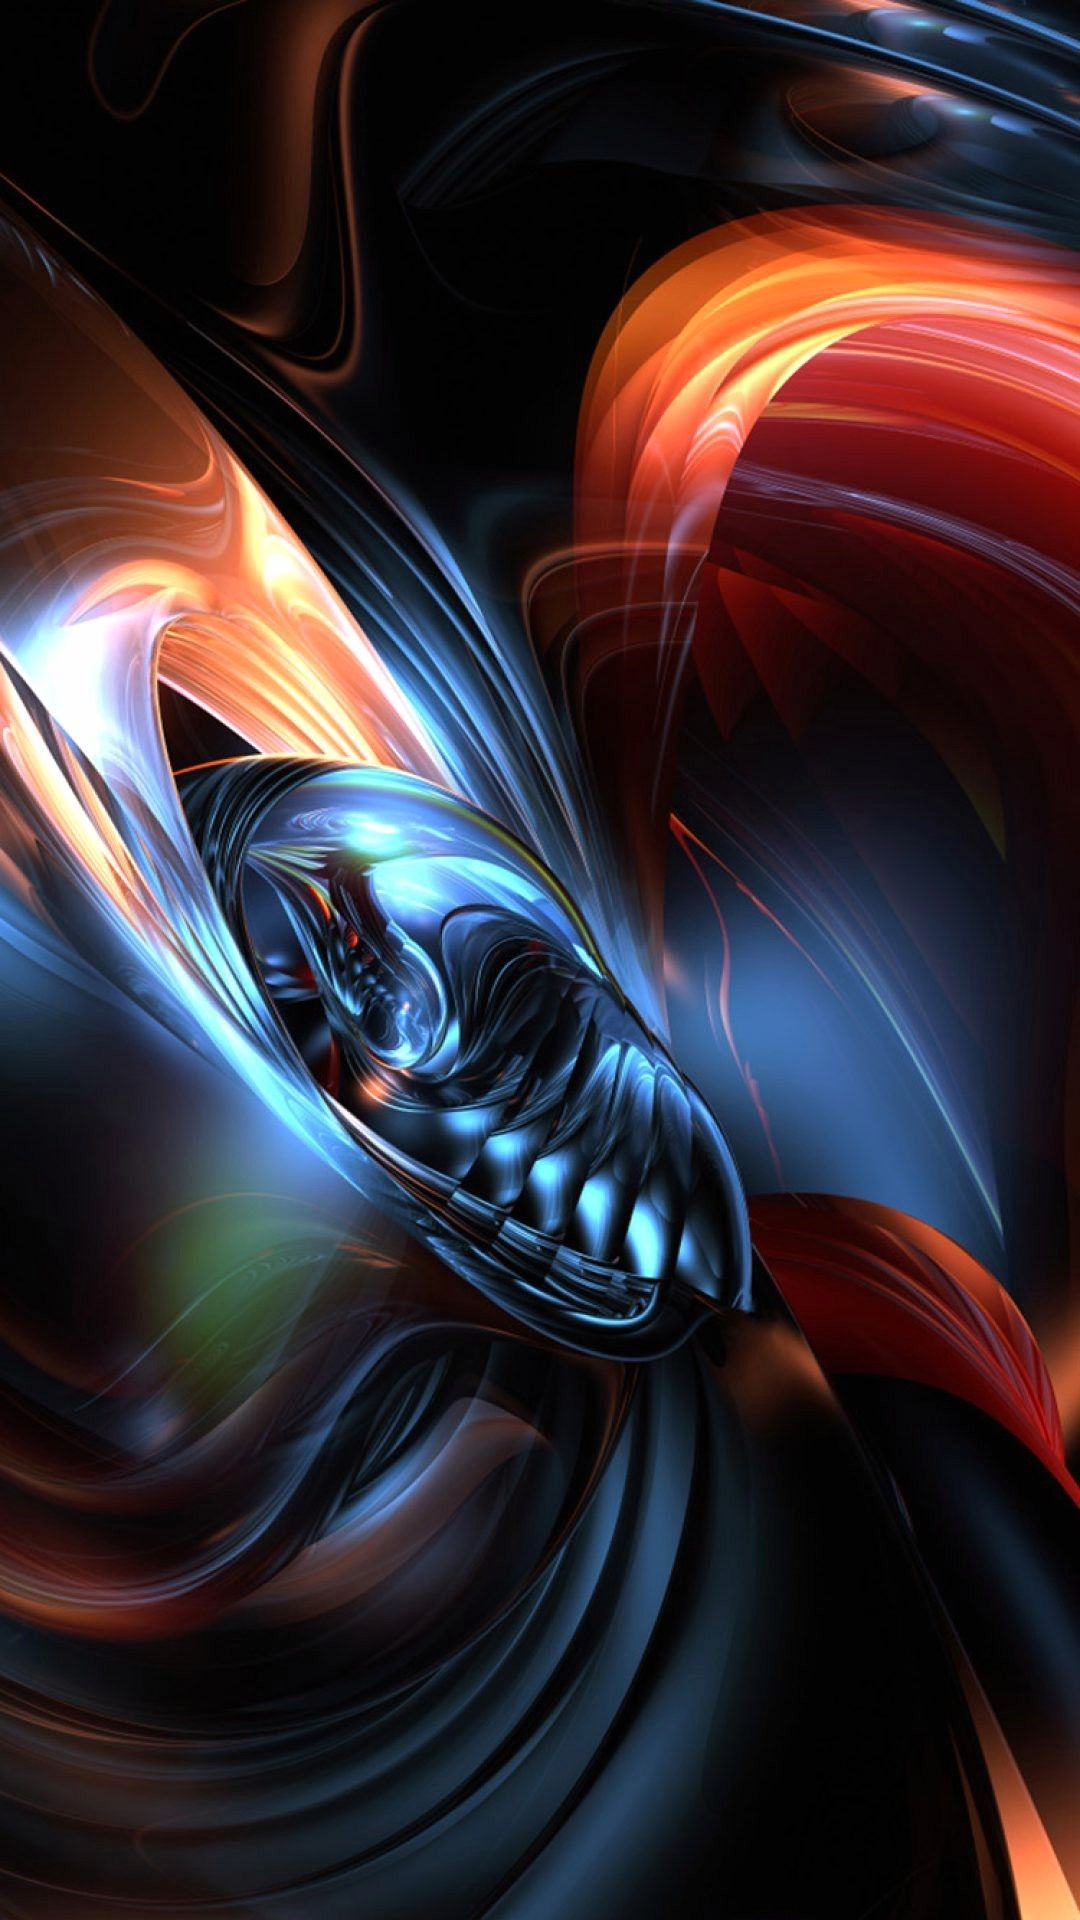 Epic Awesome Wallpaper Android Download epic awesome